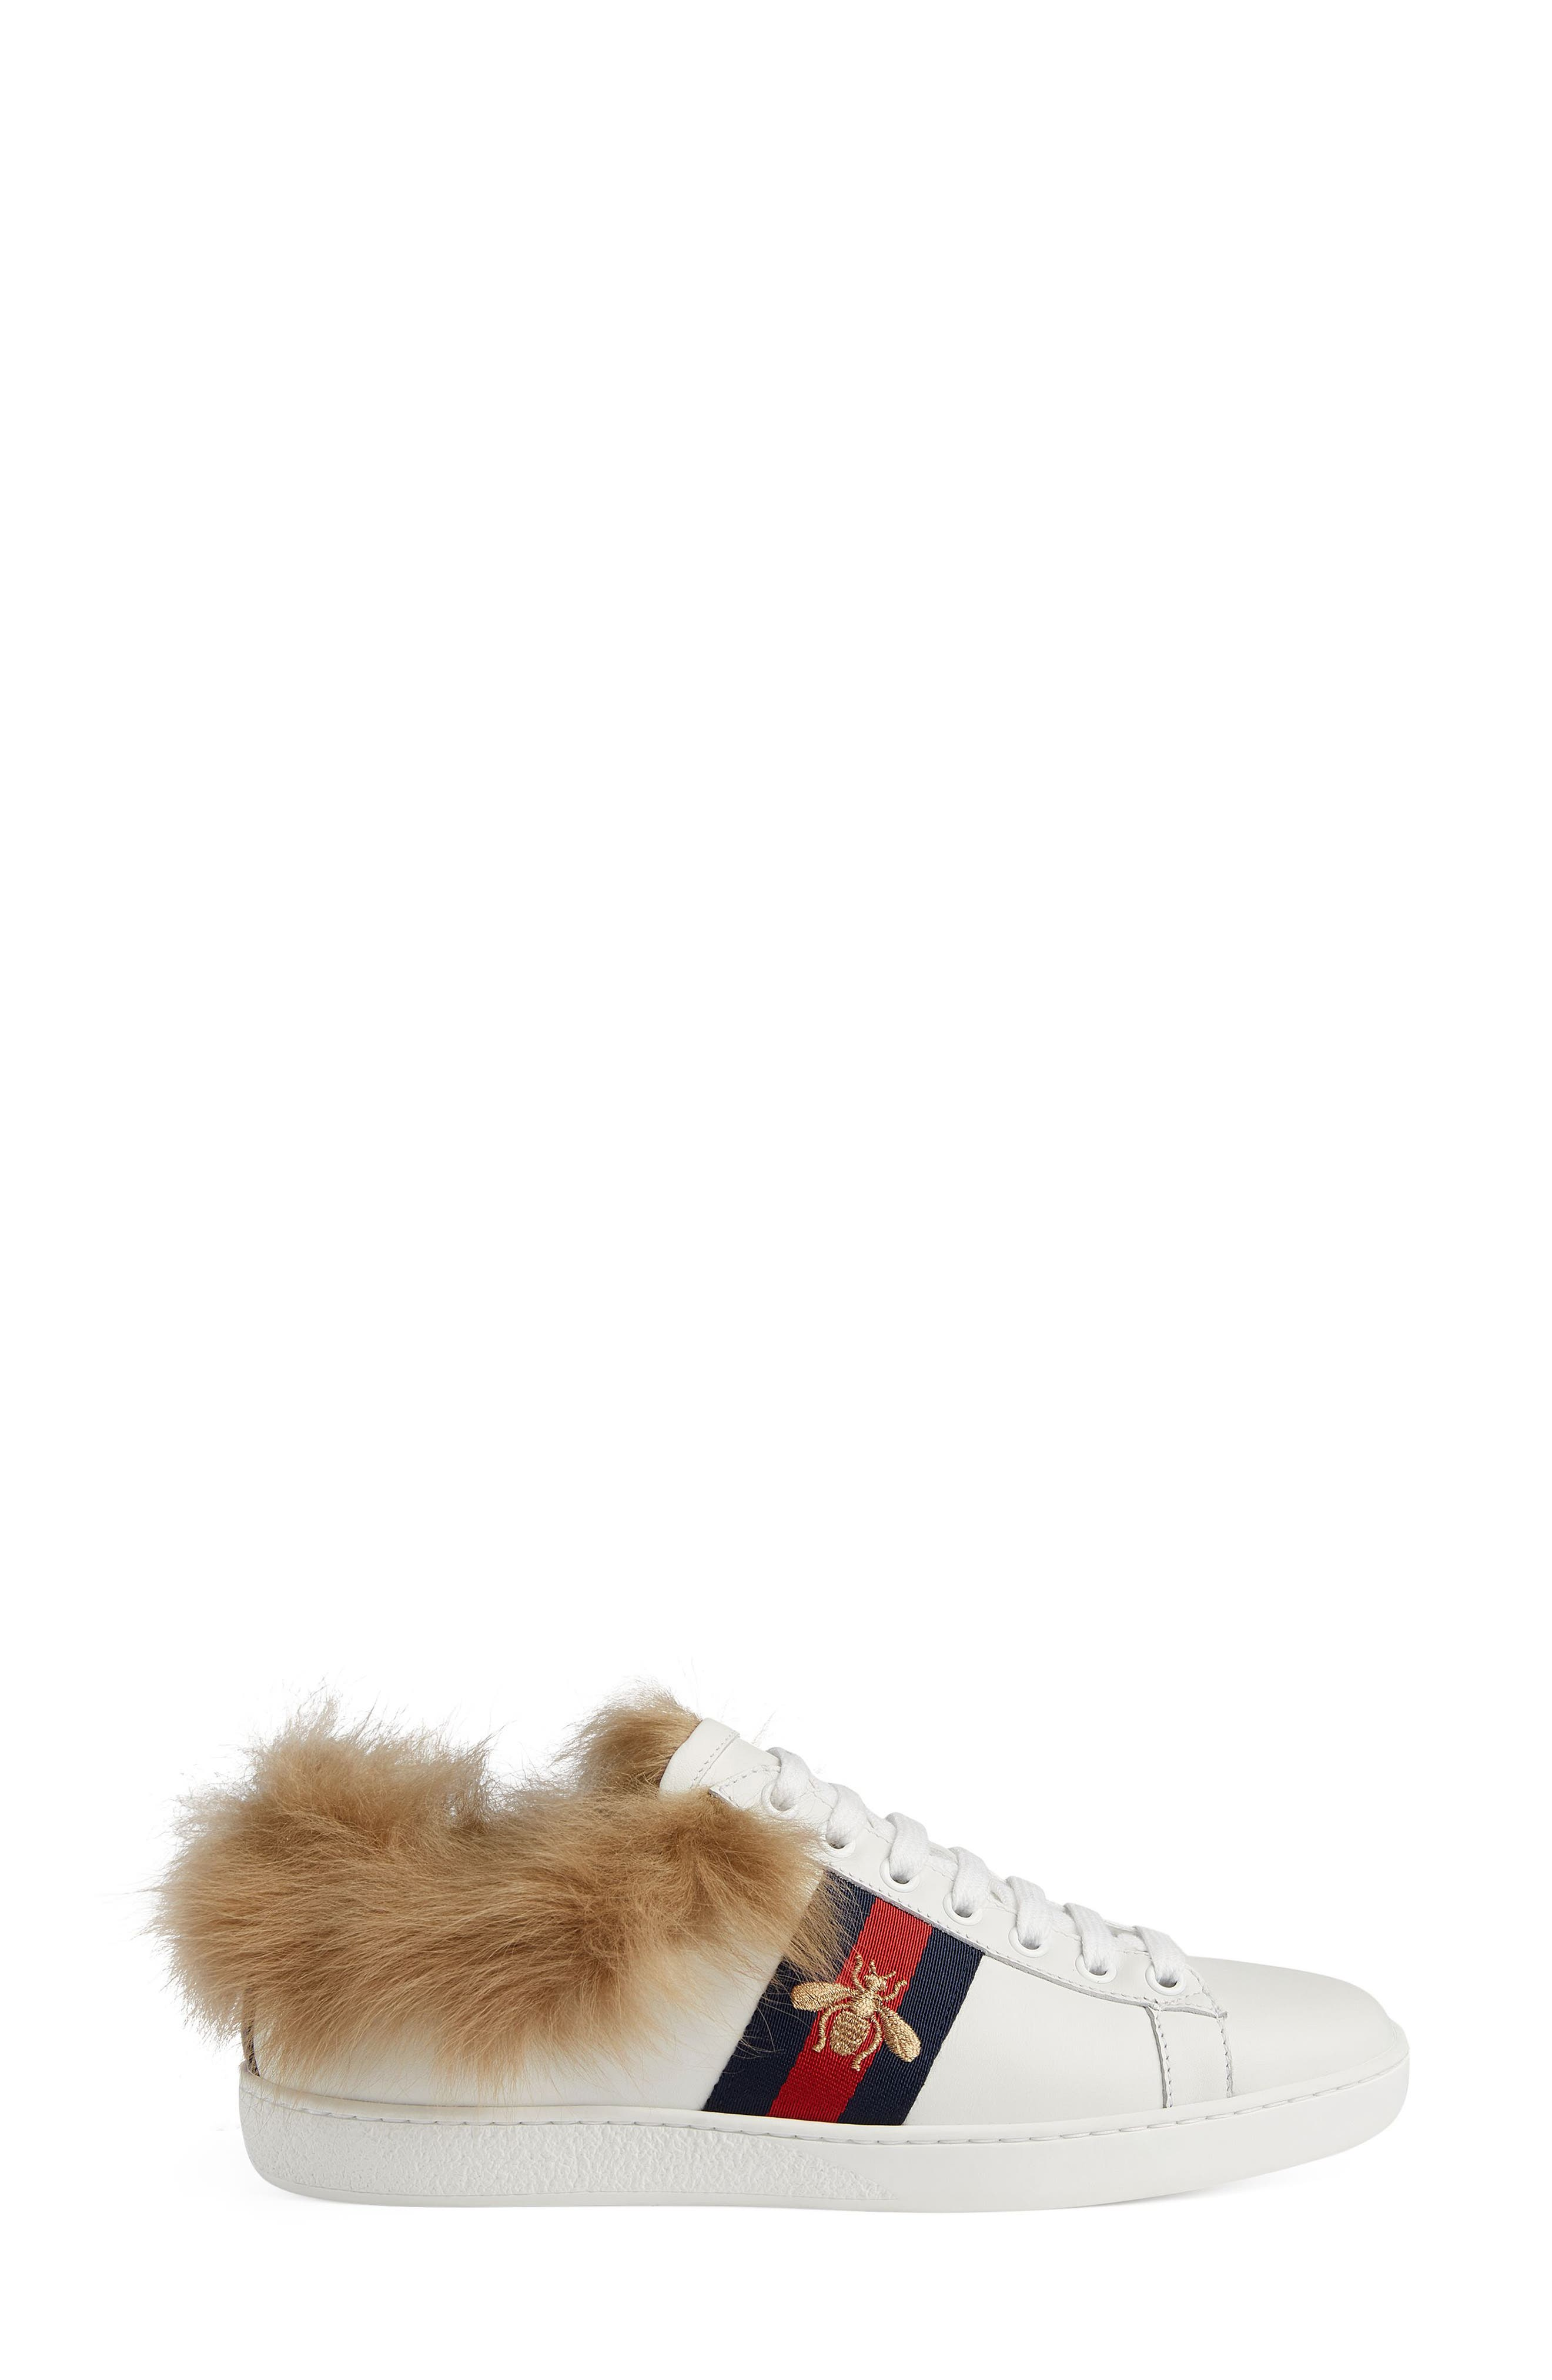 New Ace Genuine Shearling Lining Sneaker,                             Alternate thumbnail 2, color,                             White